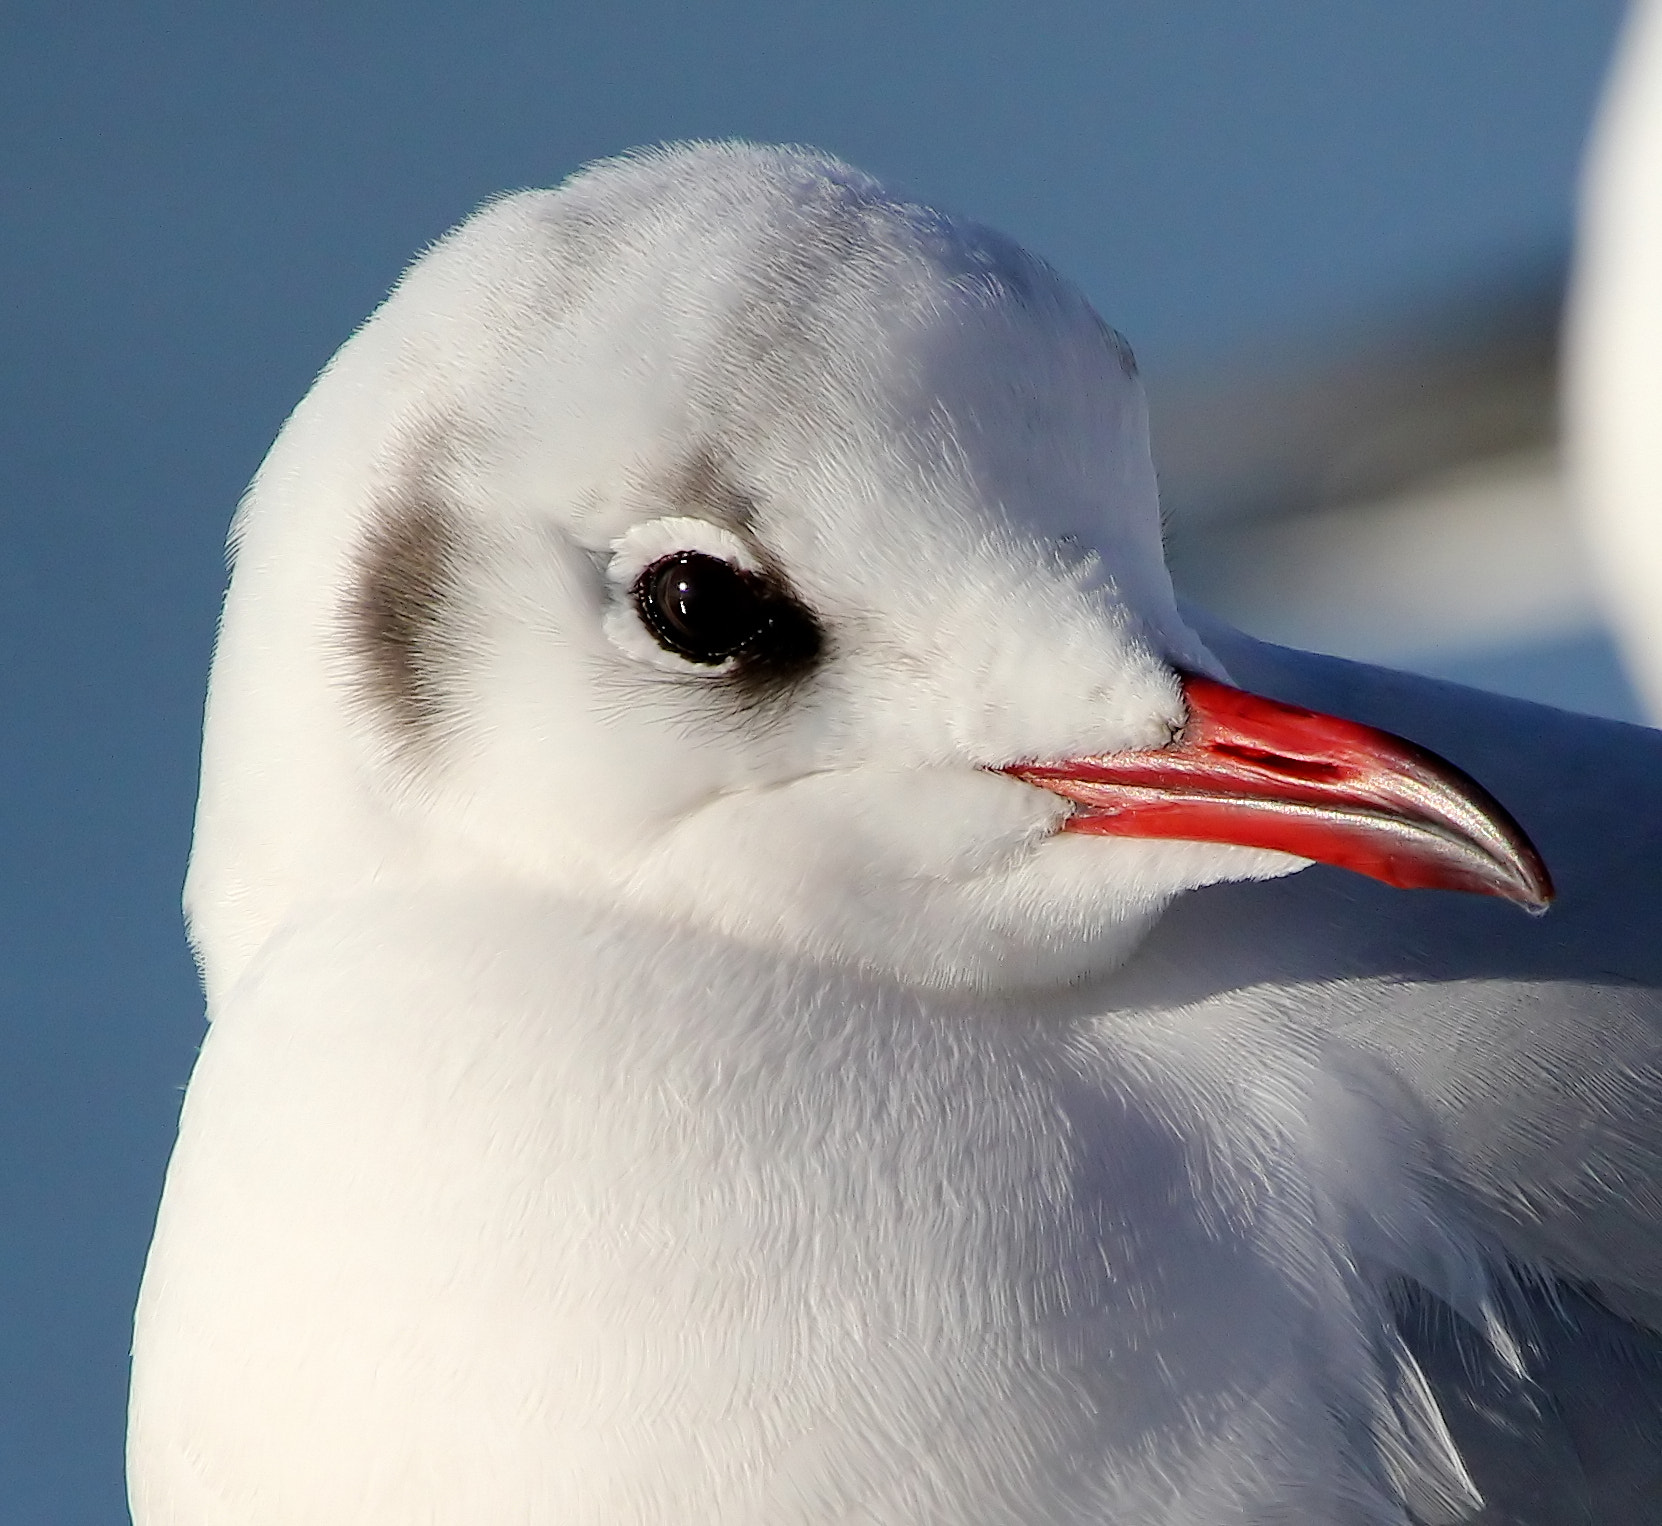 Photograph Black-headed Gull by Ger Bosma on 500px